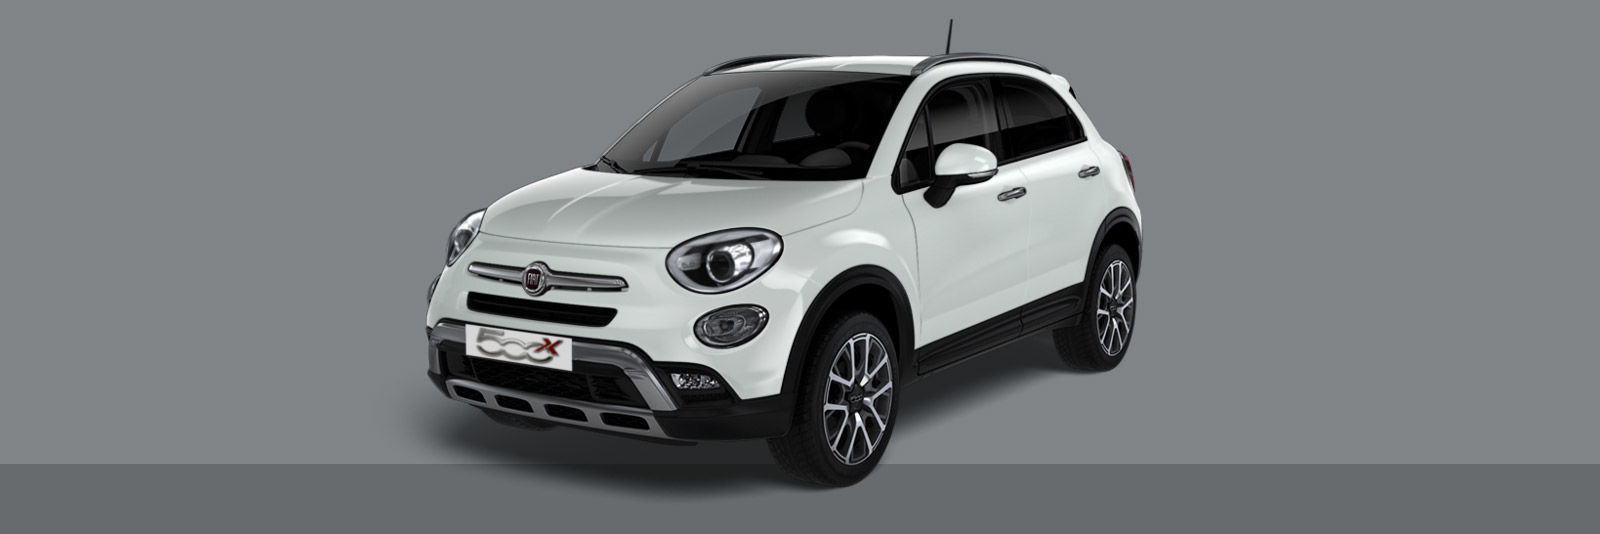 fiat 500x colours guide and prices carwow. Black Bedroom Furniture Sets. Home Design Ideas